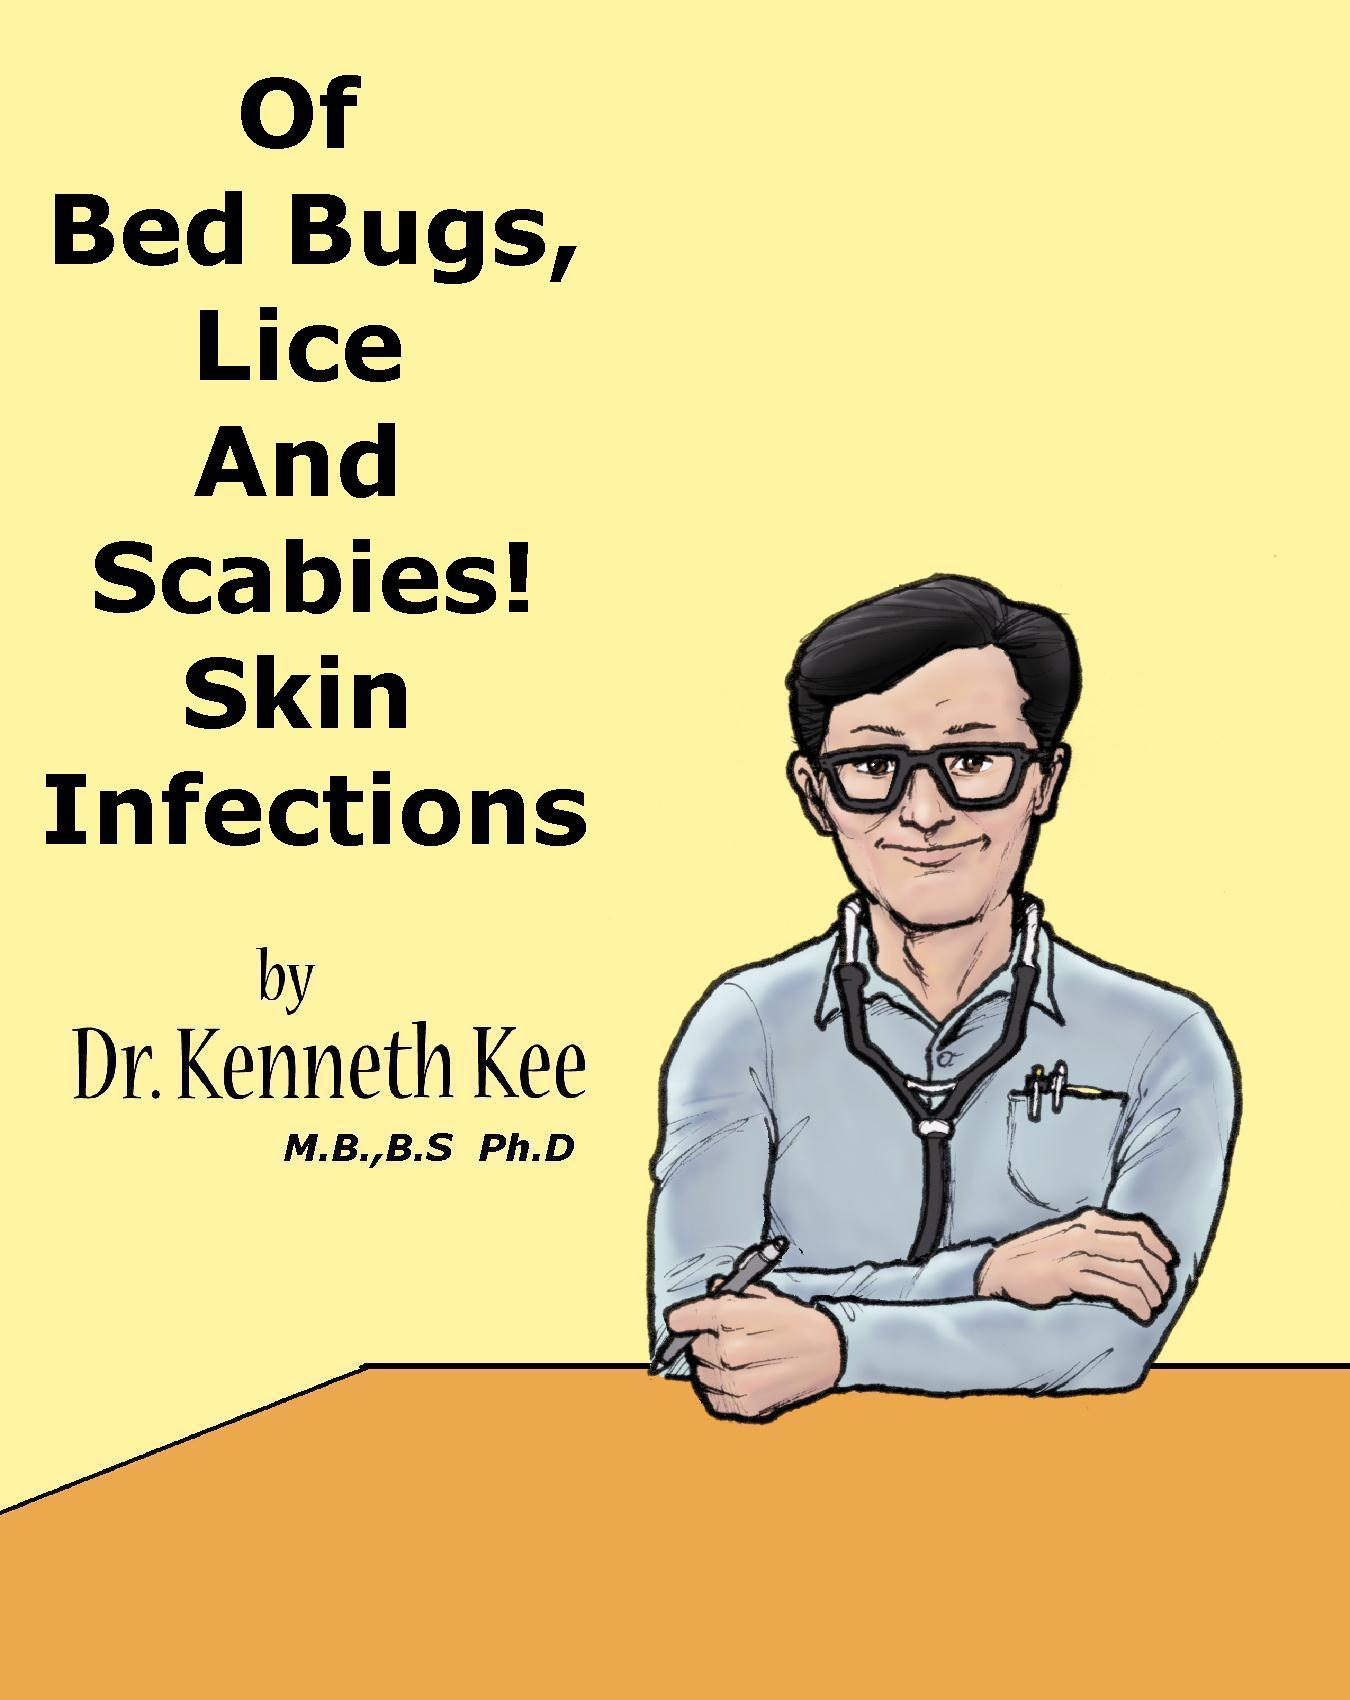 Of Bed Bugs, Lice And Scabies! Skin Infections.